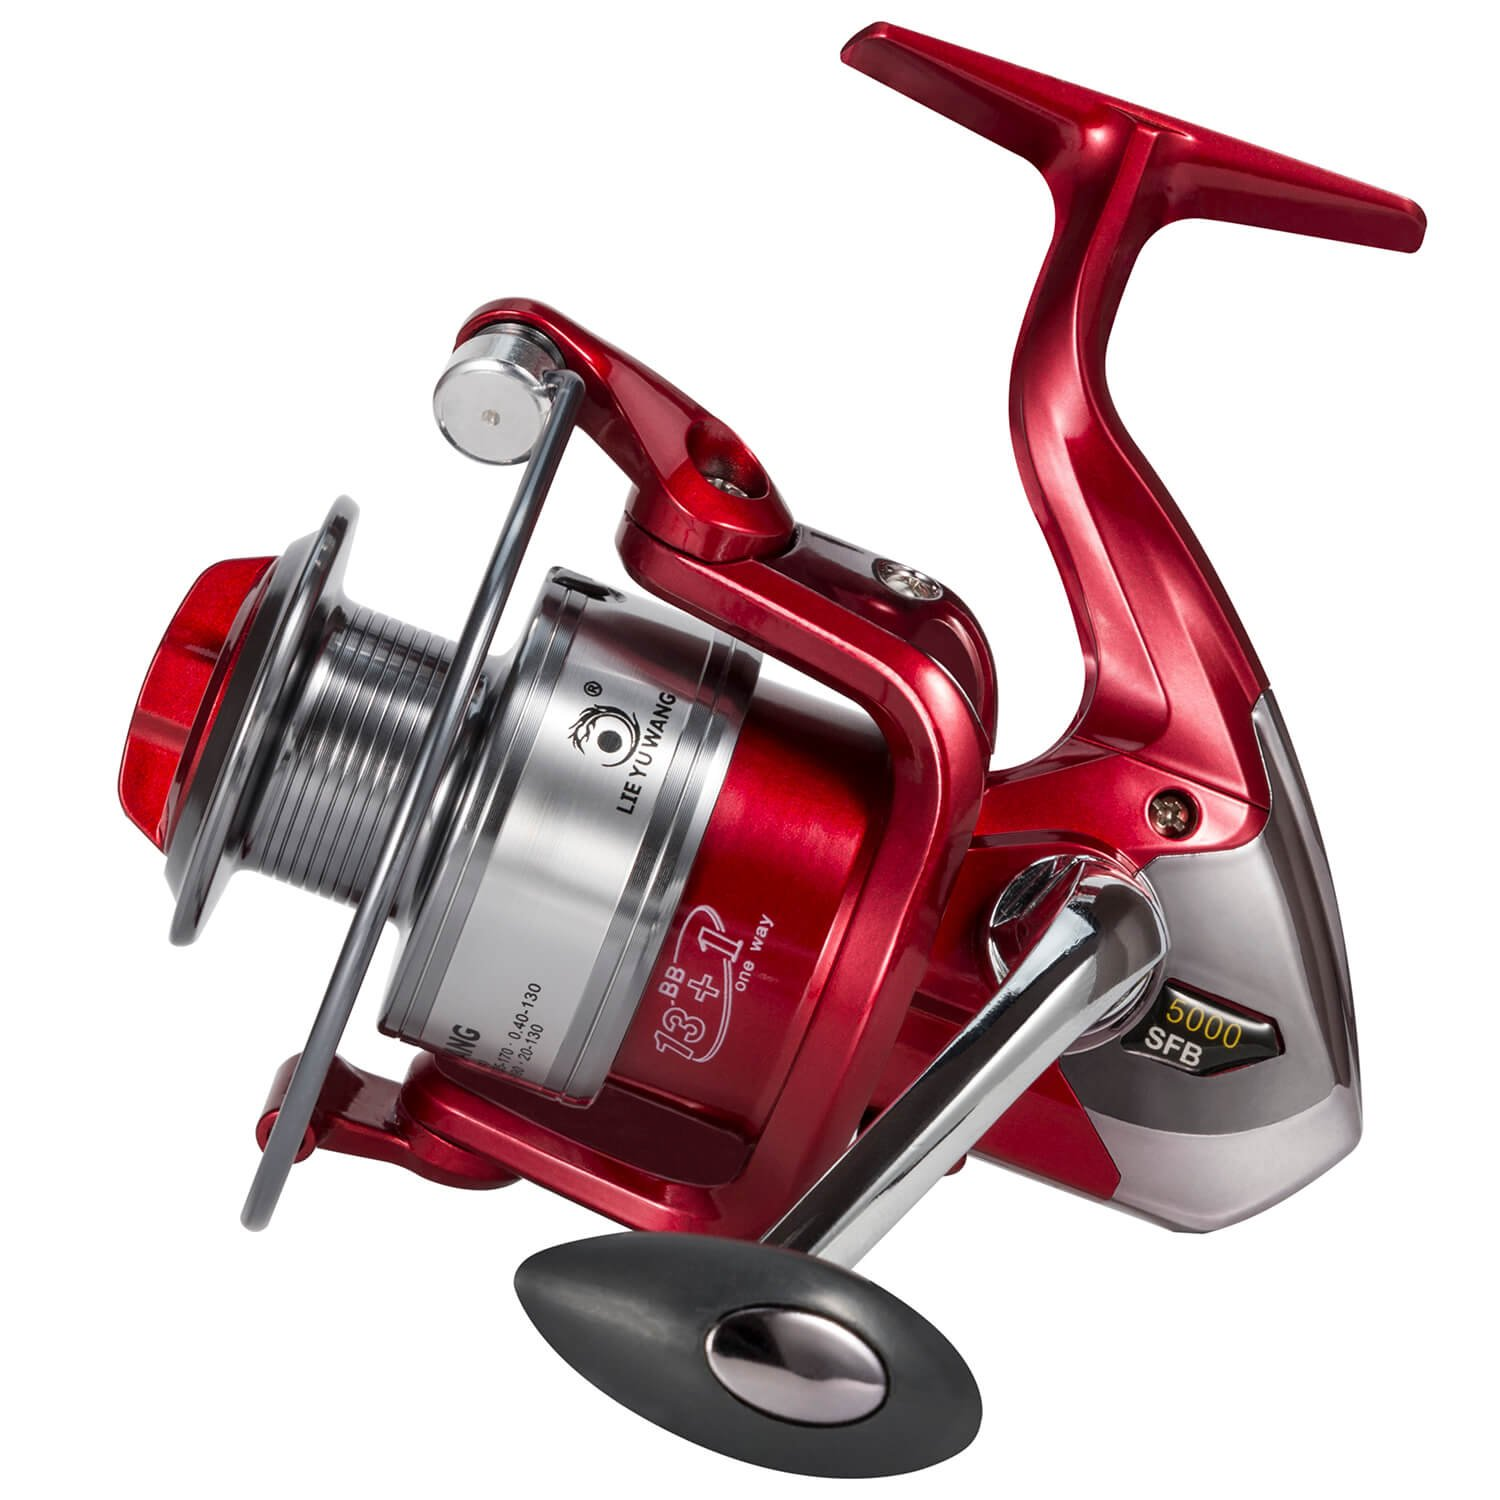 Spining Fishing Reel 13 1BB Ultra Smooth Spinning Reels 3000 4000 5000, Left Right Interchangeable Handle for Freshwater Saltwater Boat Bass Fishing Red